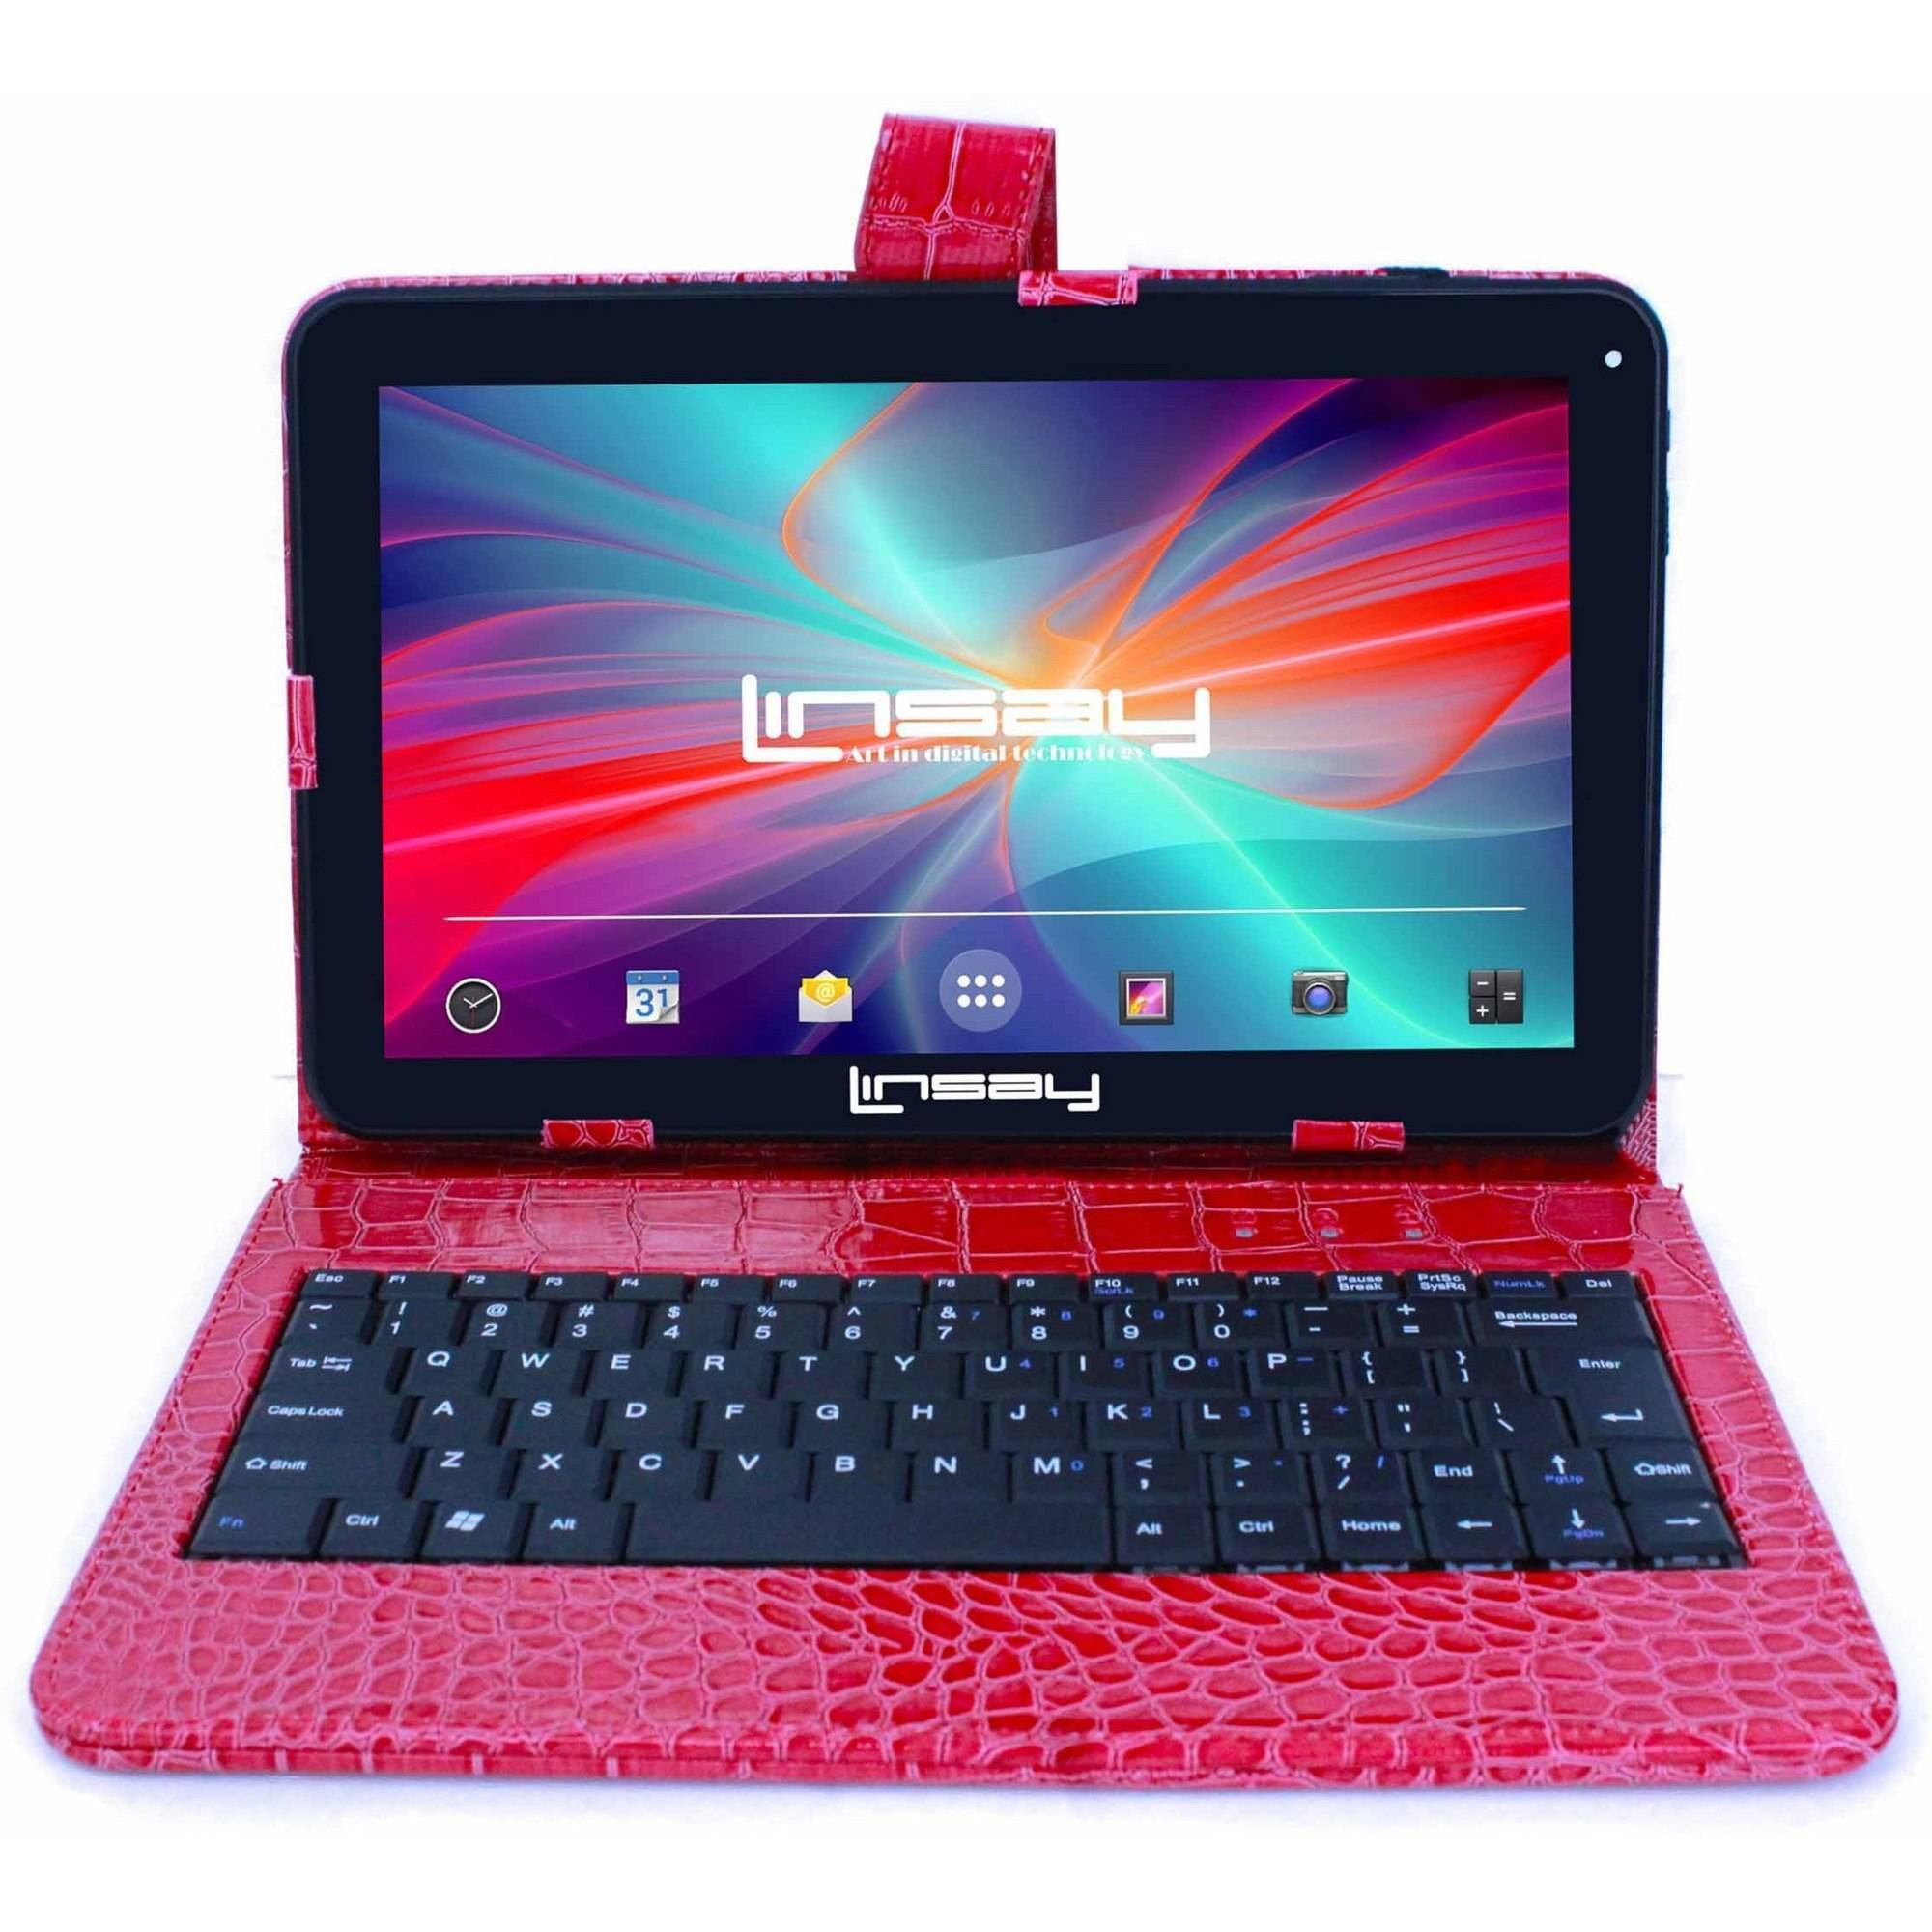 LINSAY 10.1 Touchscreen Quad Core Tablet PC Featuring Android 4.4 (KitKat) Operating System Bundle with Red Crocodile Style Keyboard